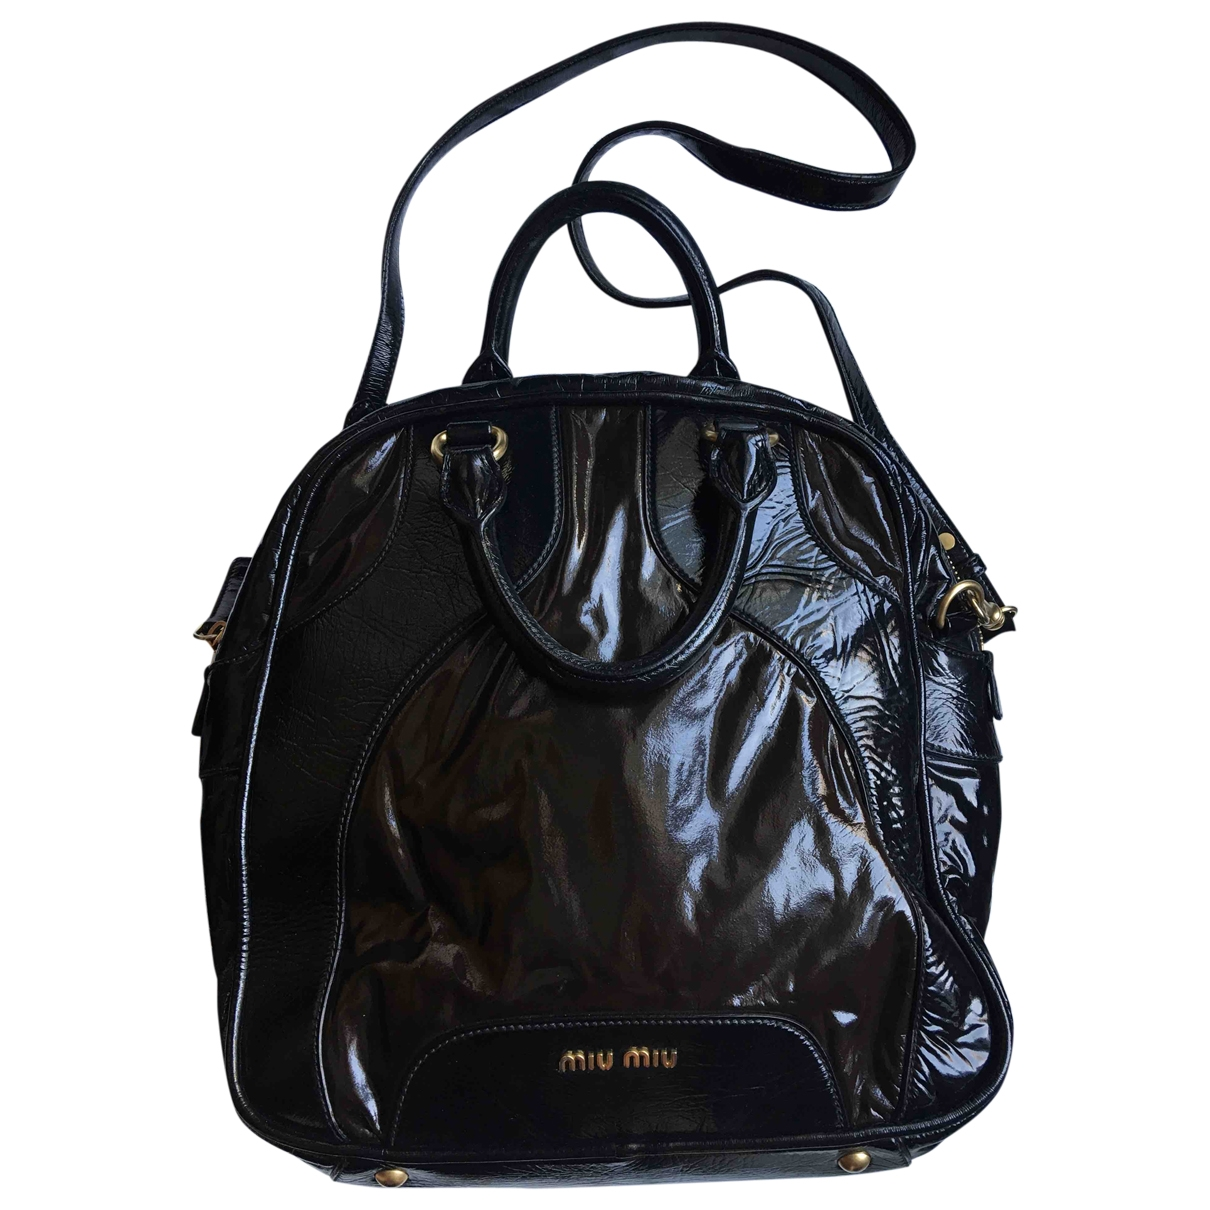 Miu Miu \N Black Patent leather handbag for Women \N